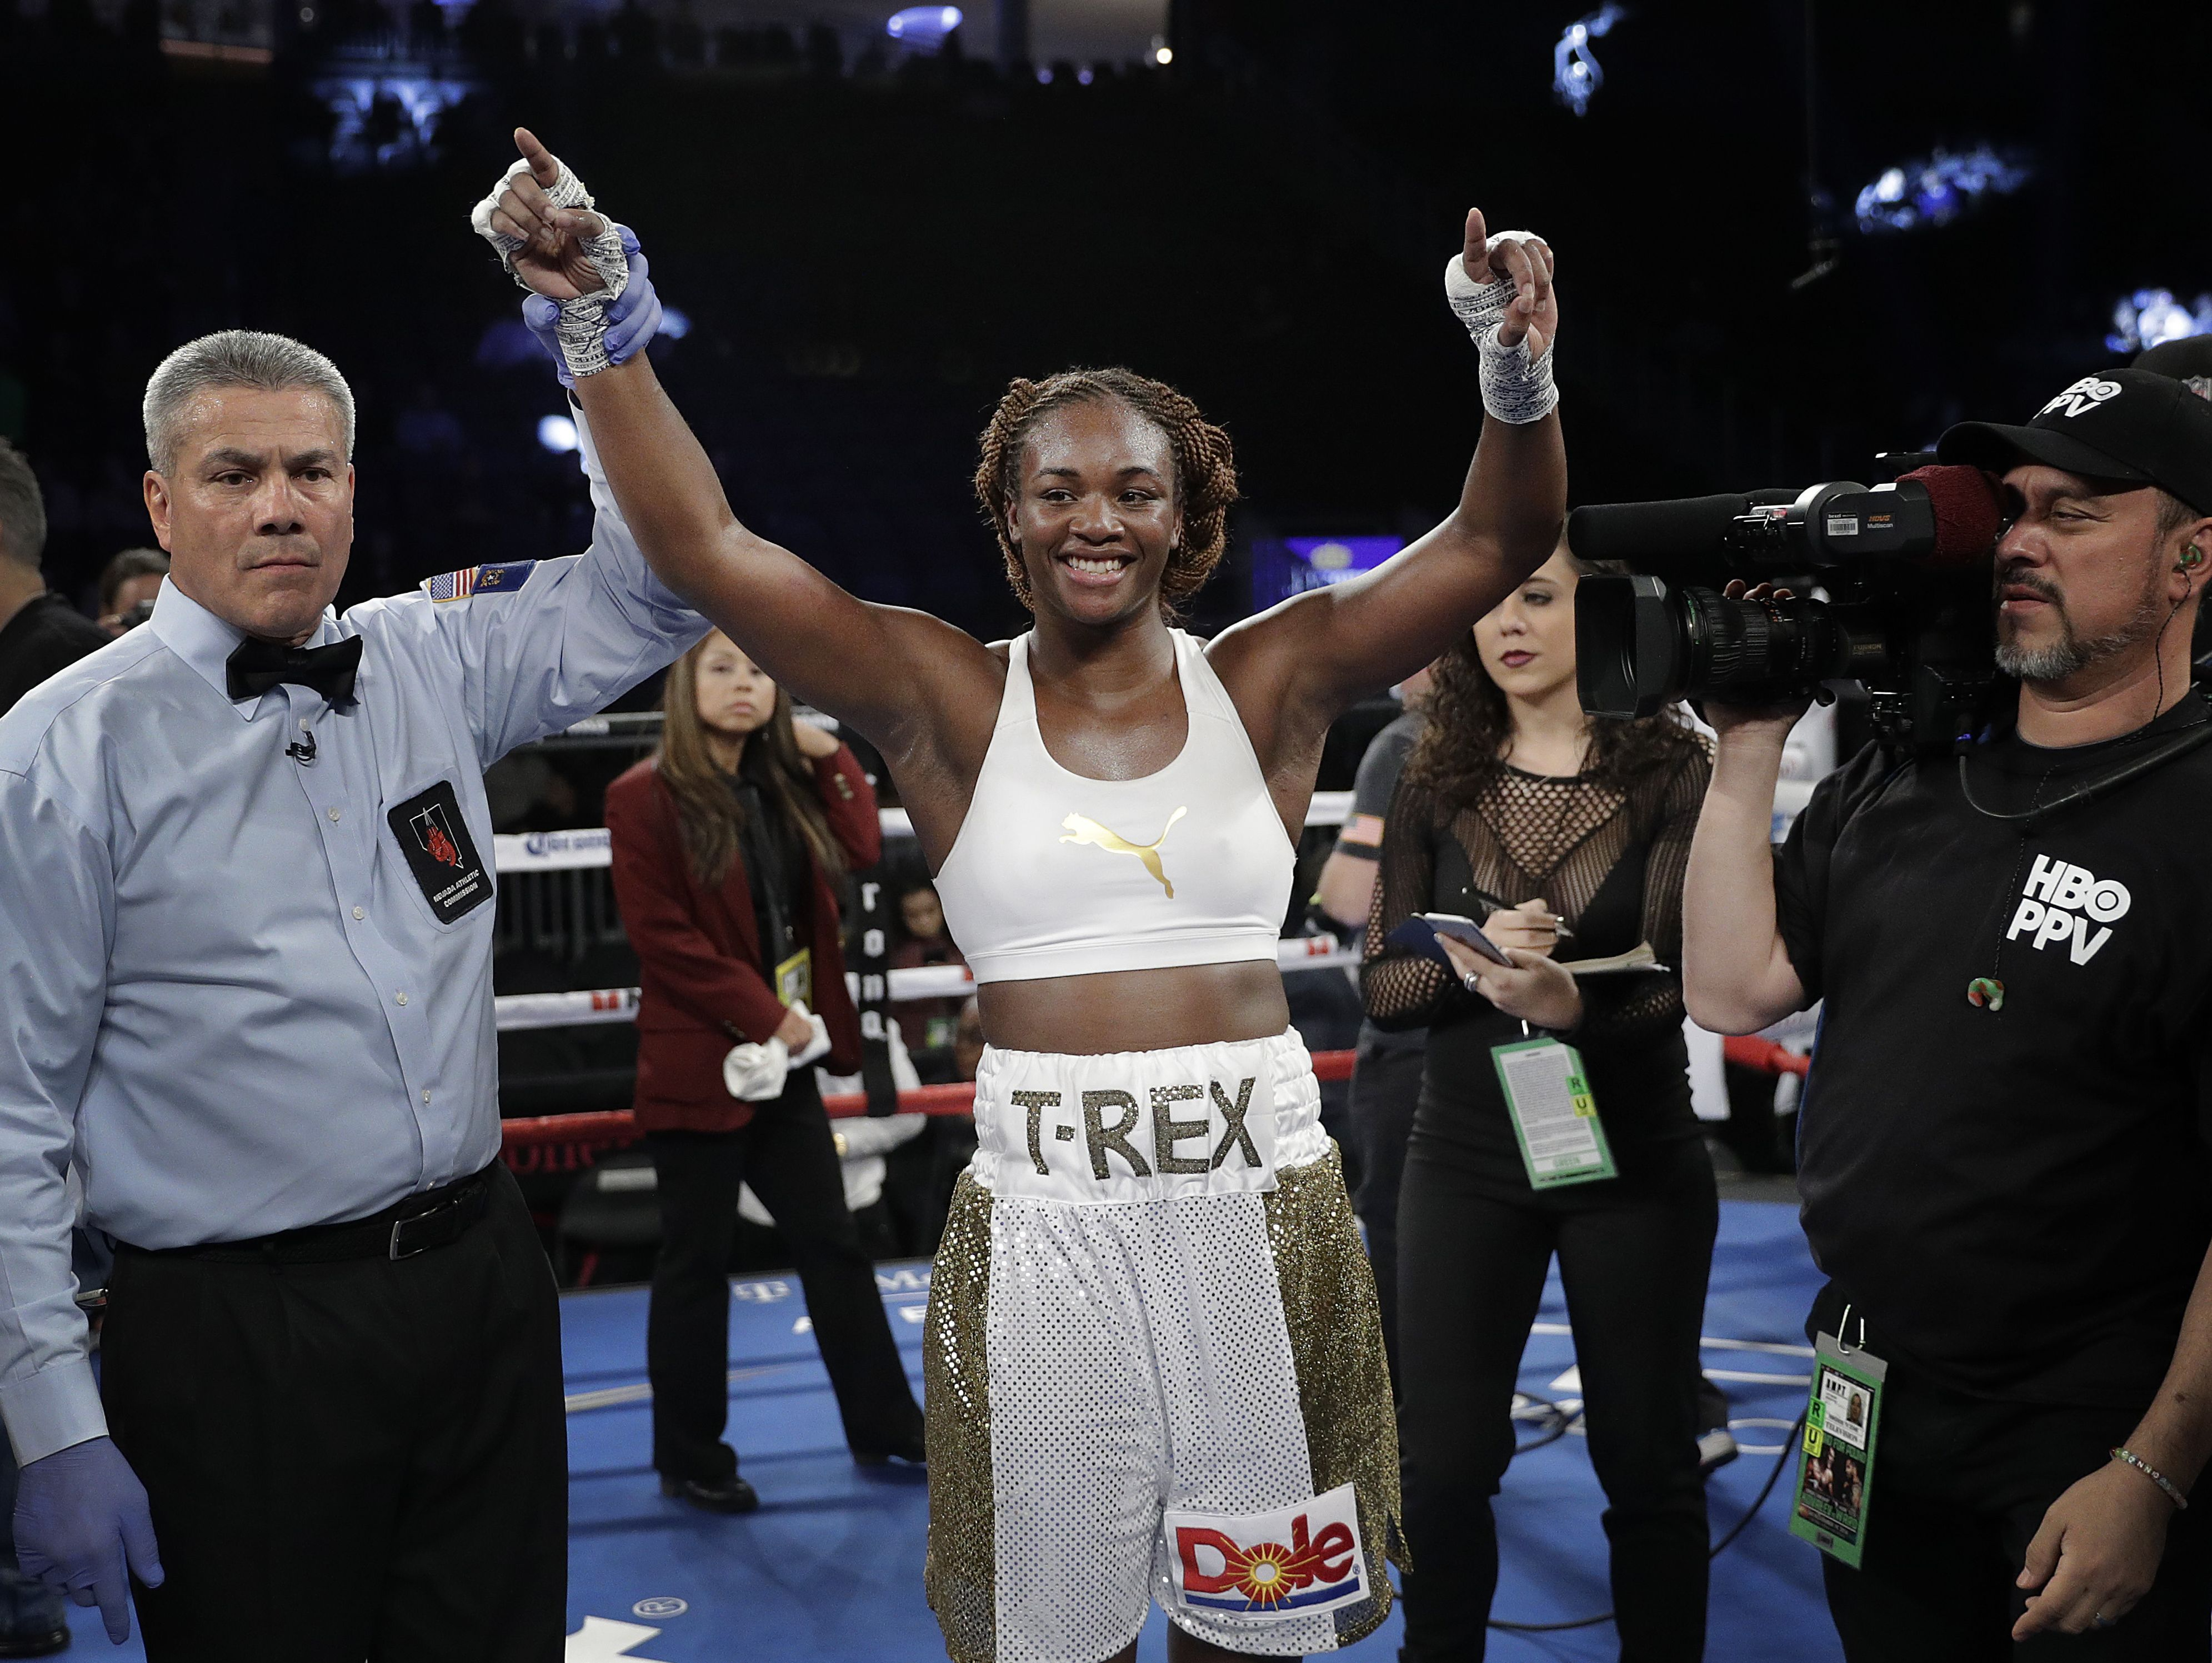 Two-time Olympic gold champion Claressa Shields, center, is the featured speaker for this year's Greater Lansing Sports Awards.